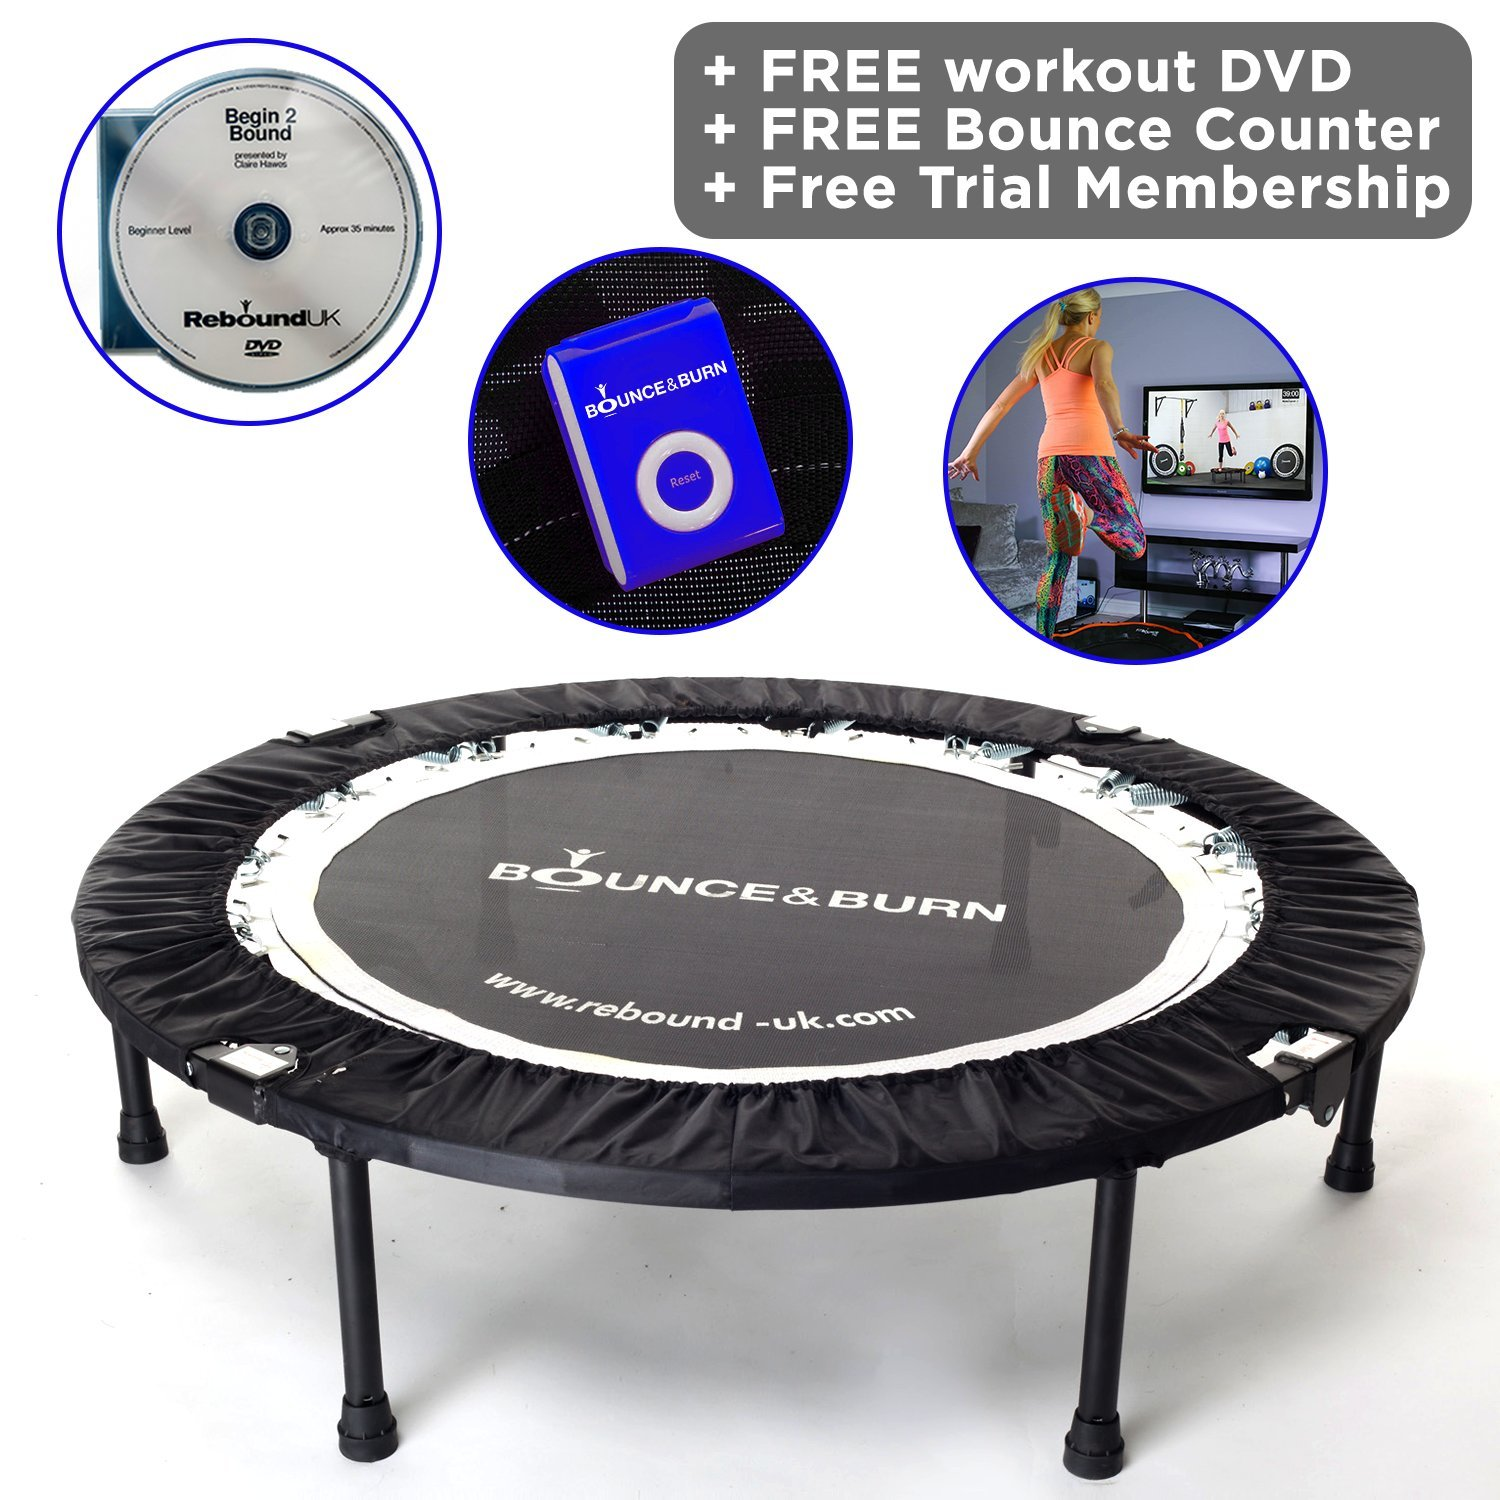 Softbounce And Hardbounce Mini Trampolines: Best Rated In Trampolines & Helpful Customer Reviews